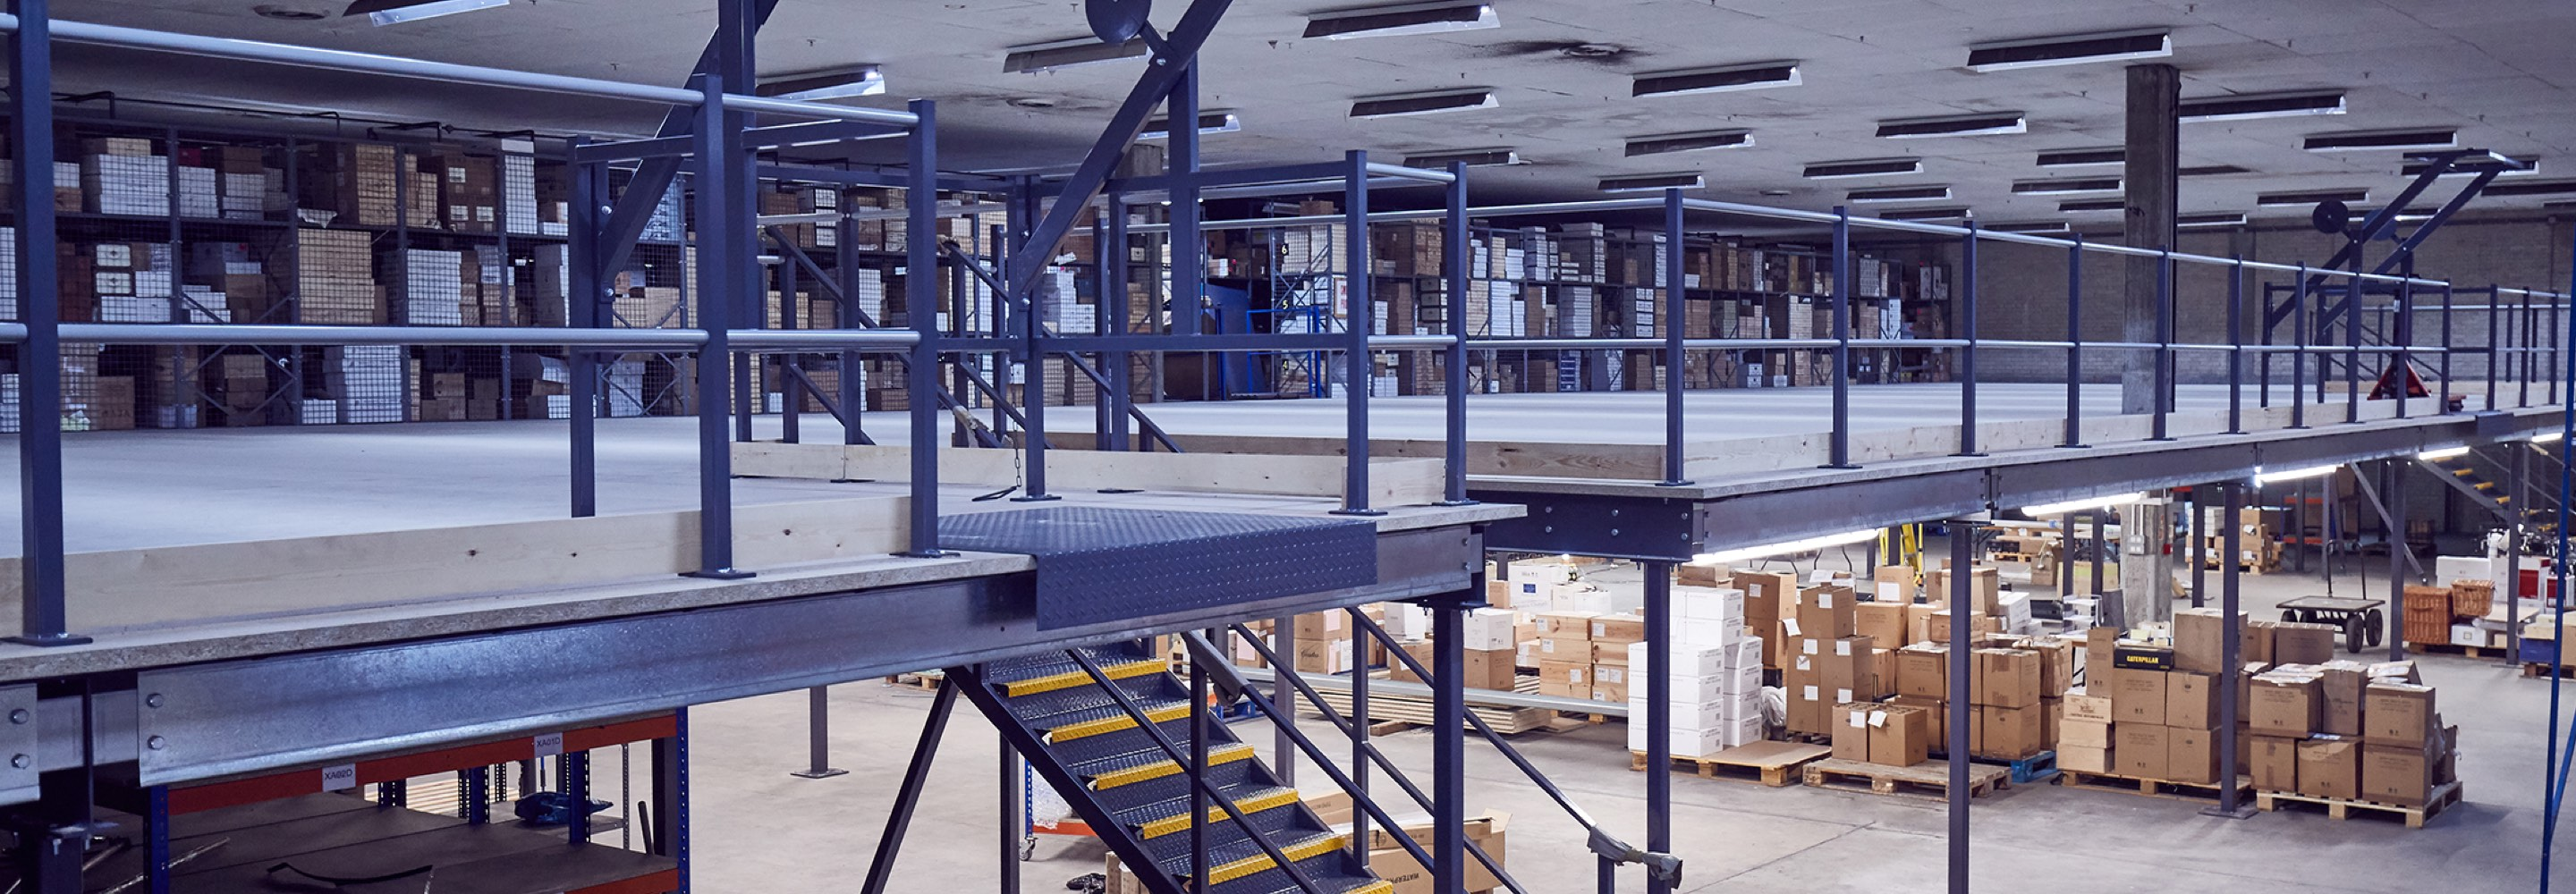 Corporate Interiors warehouse storage design and build